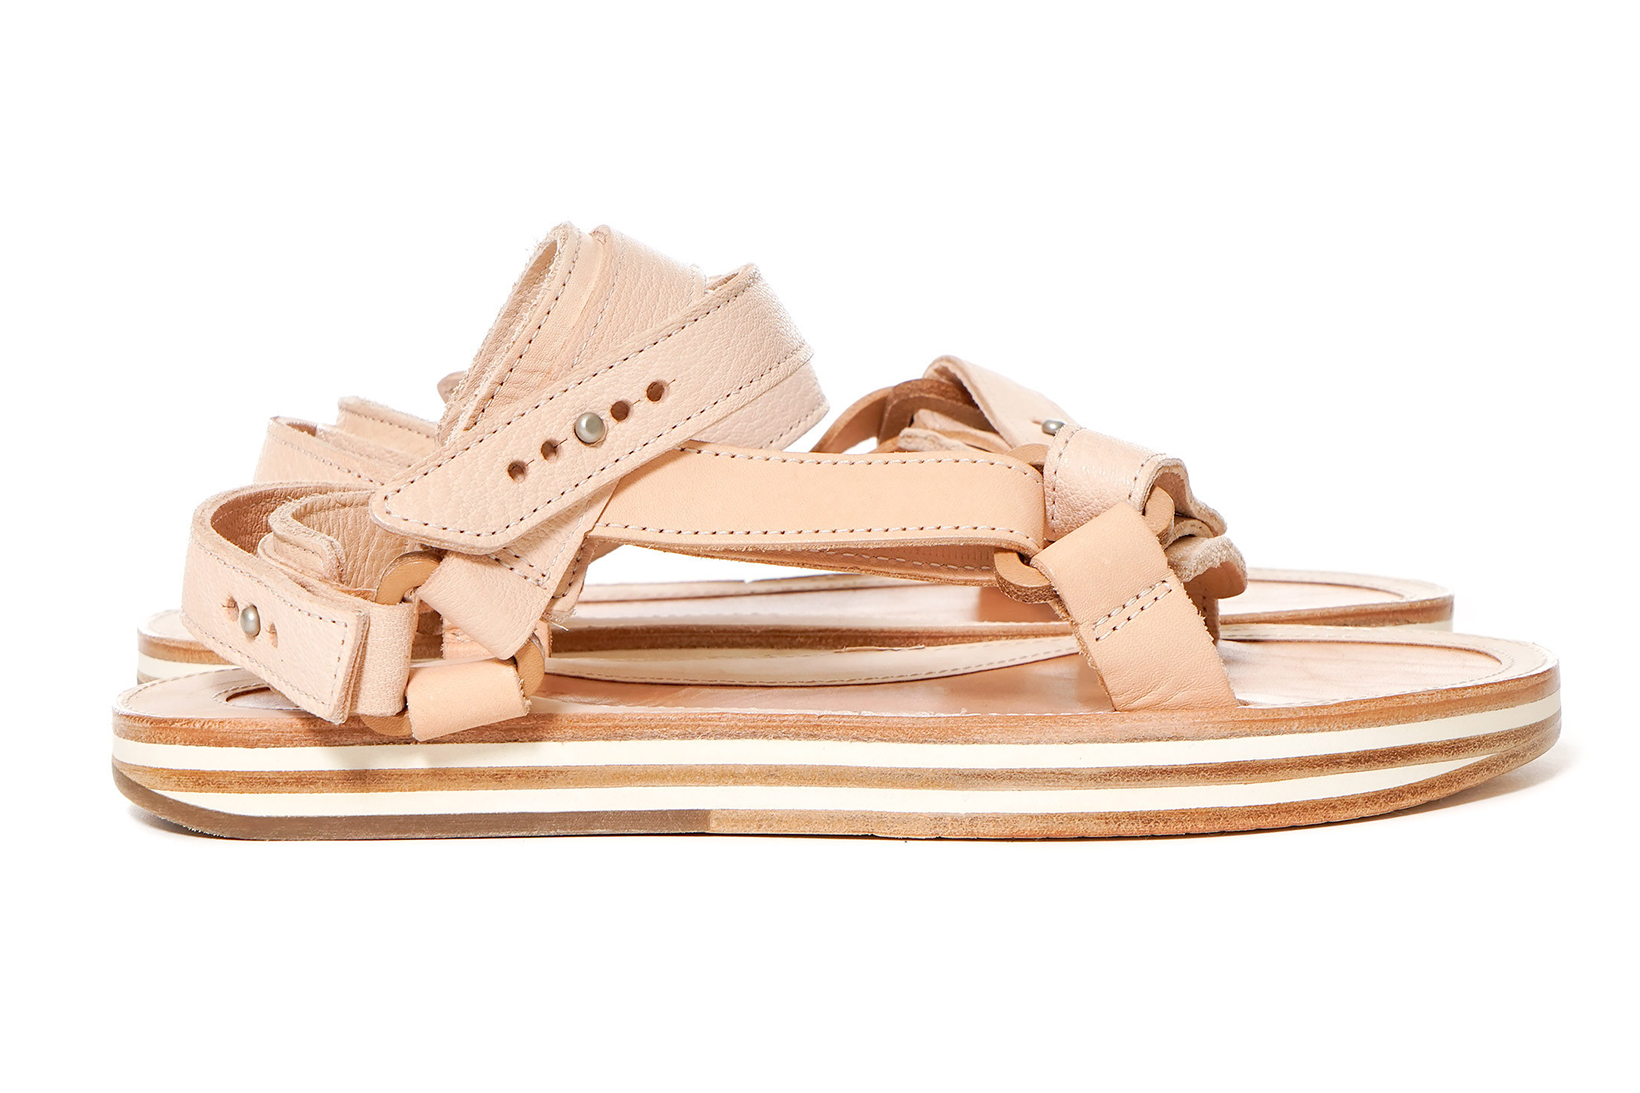 Invest in These sacai x Hender Scheme Sandals for the Warmer Months